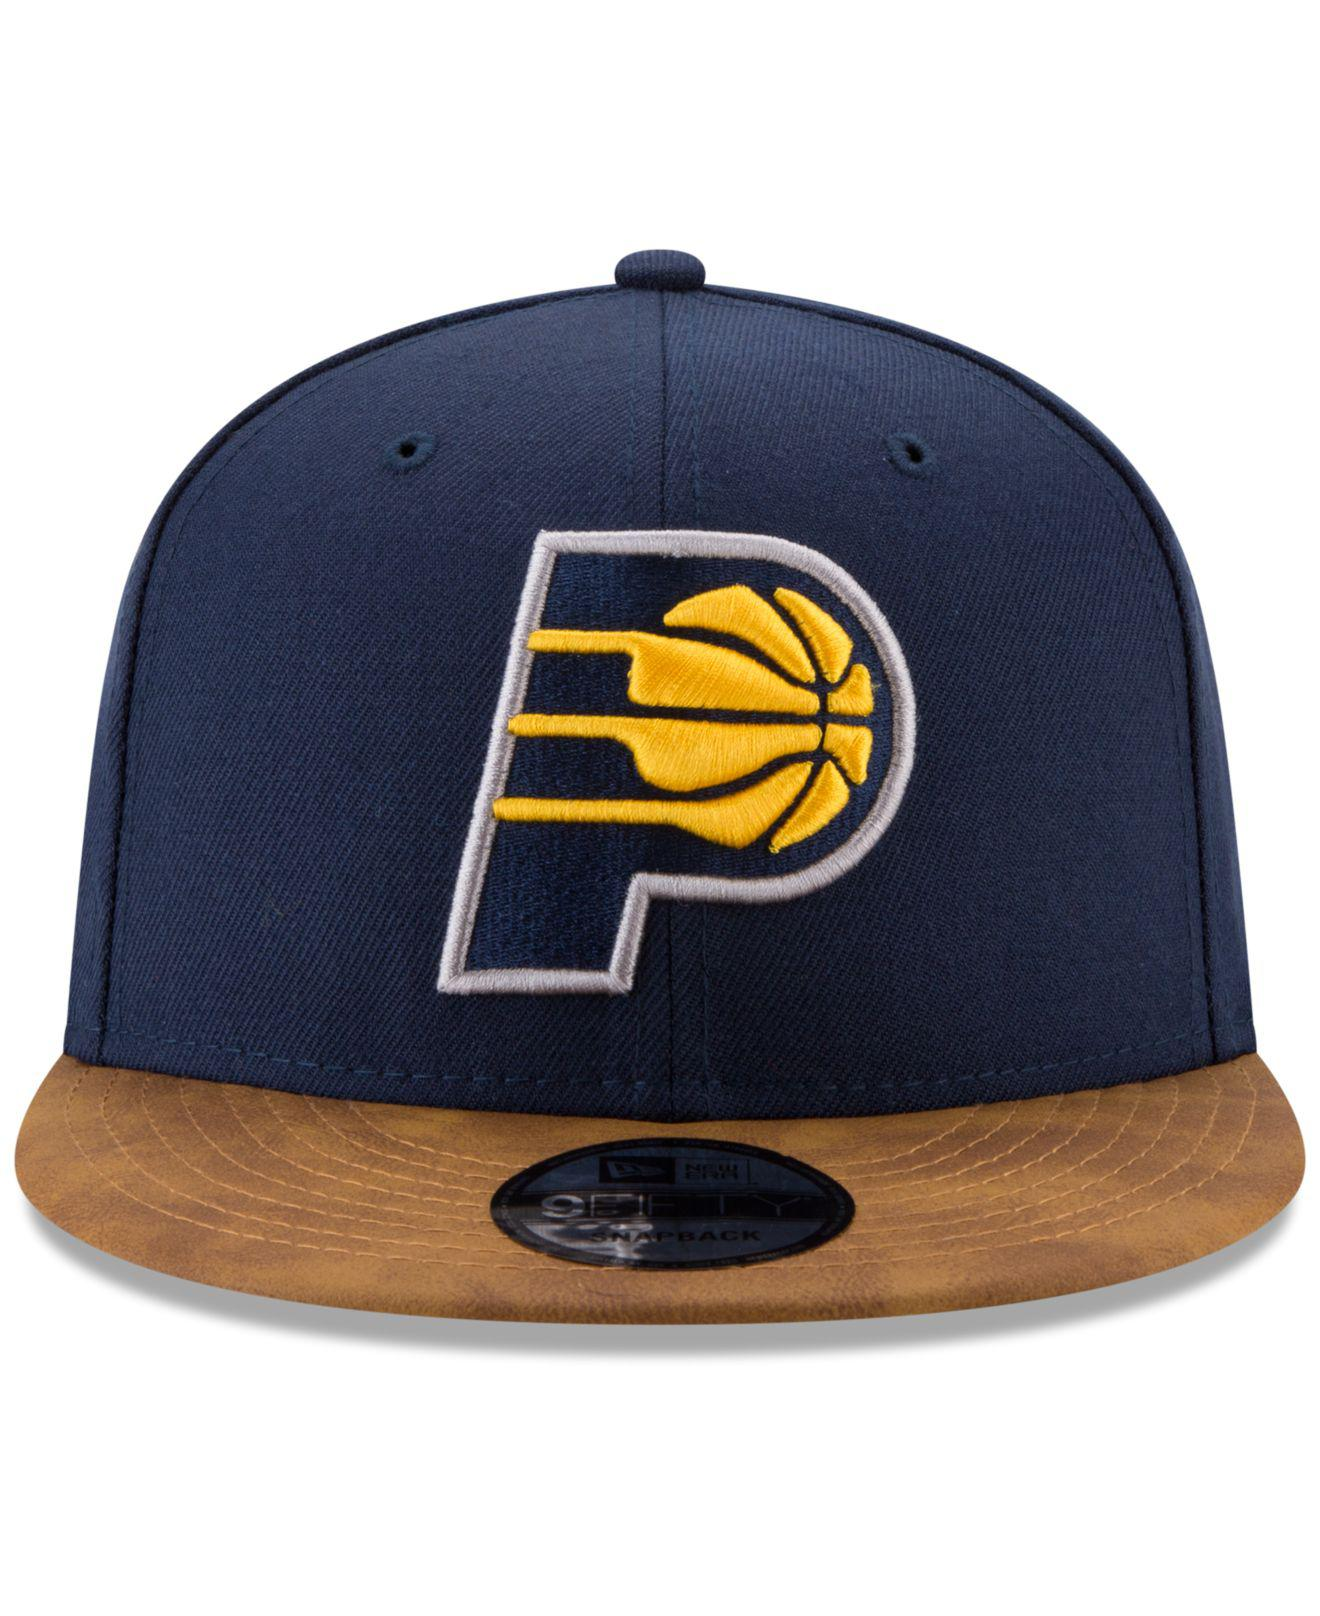 new styles df633 277a1 ... top quality lyst ktz indiana pacers team butter 59fifty snapback cap in  blue for men a602c